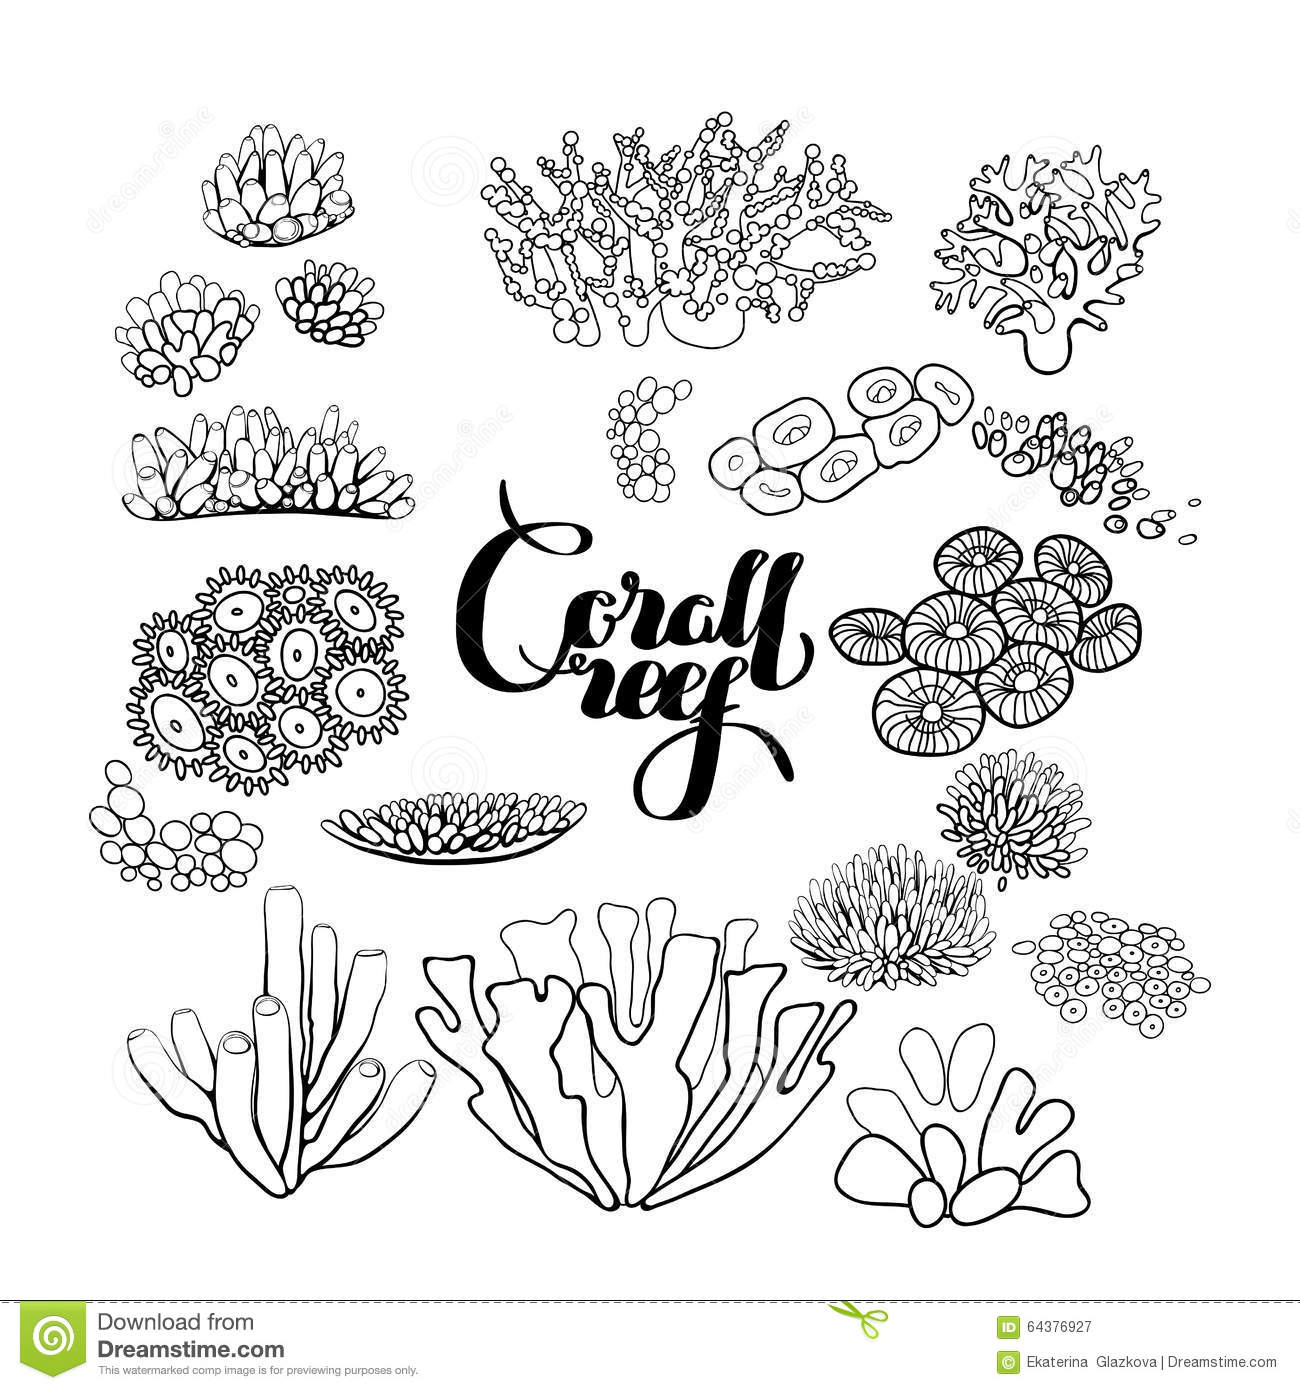 Labeled butterfly coloring pages - Similiar Coral Reef Plants Coloring Pages Keywords